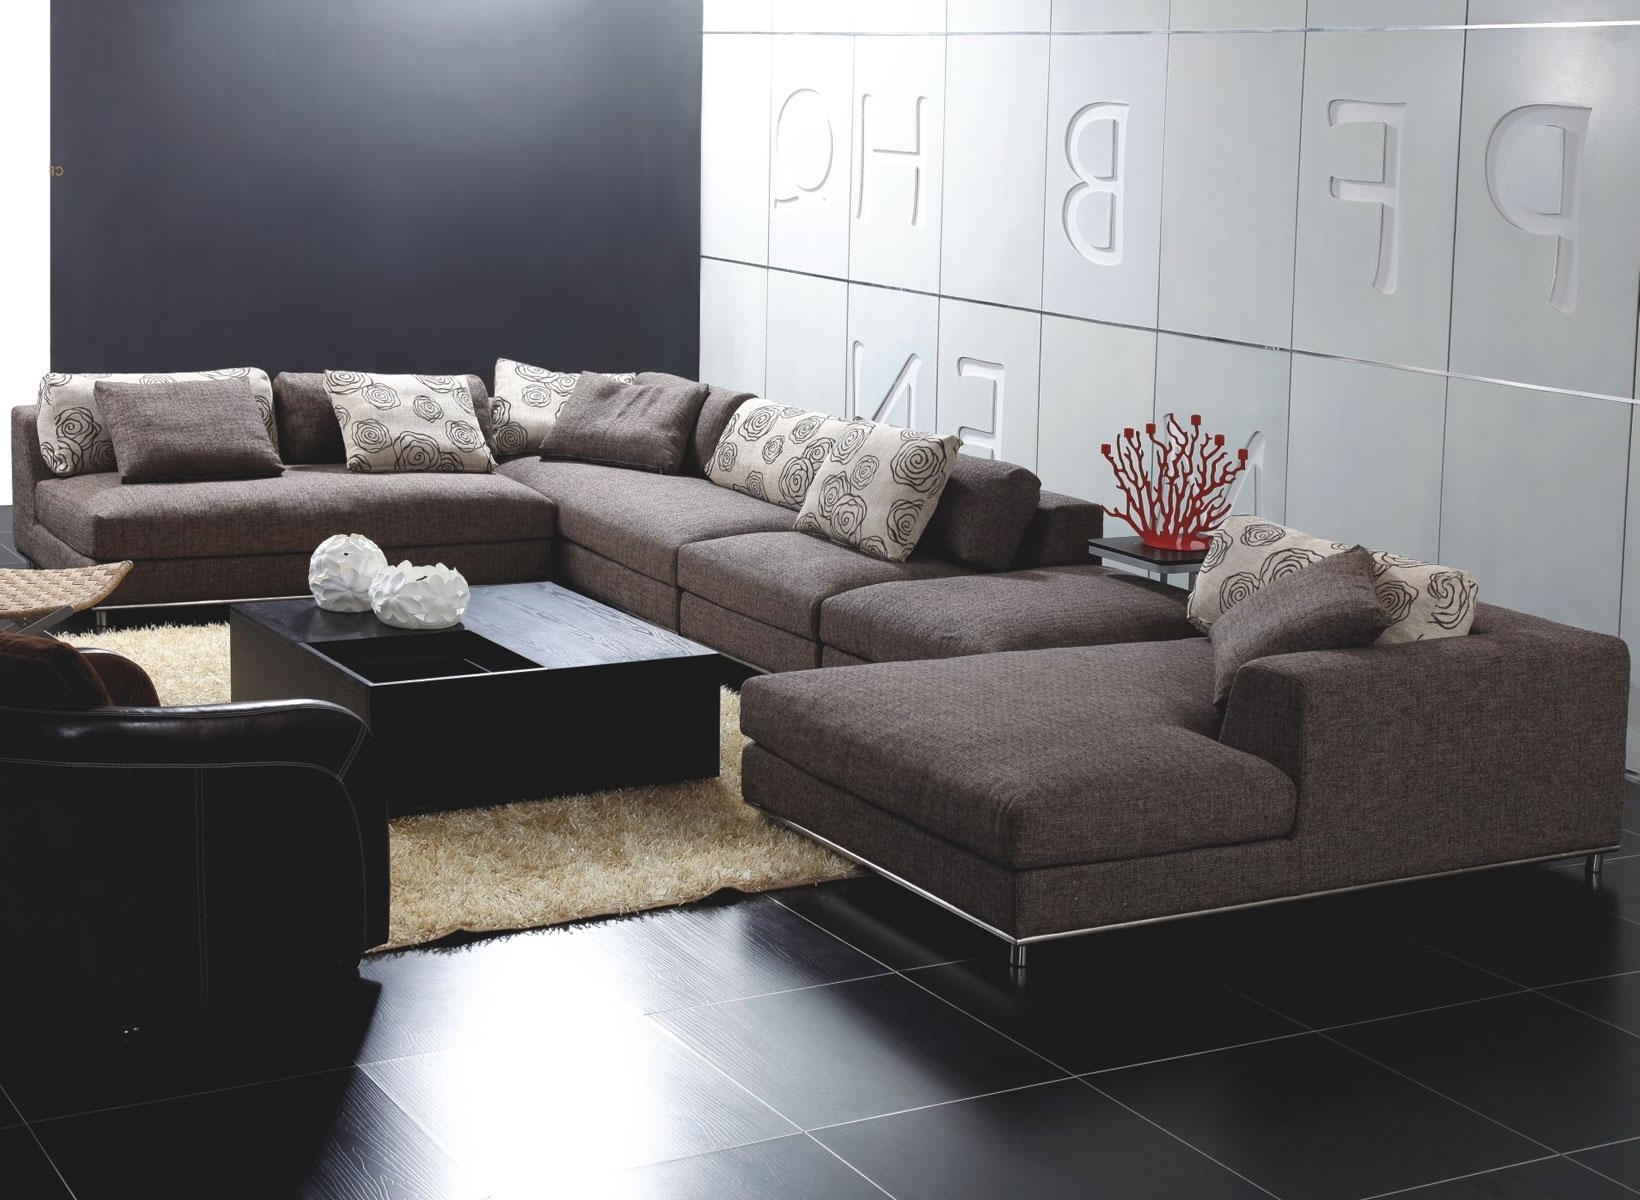 Stunning Modern Sectional Sofas With Chaise On Leather Reclining Regarding Fashionable Unique Sectional Sofas (View 14 of 20)